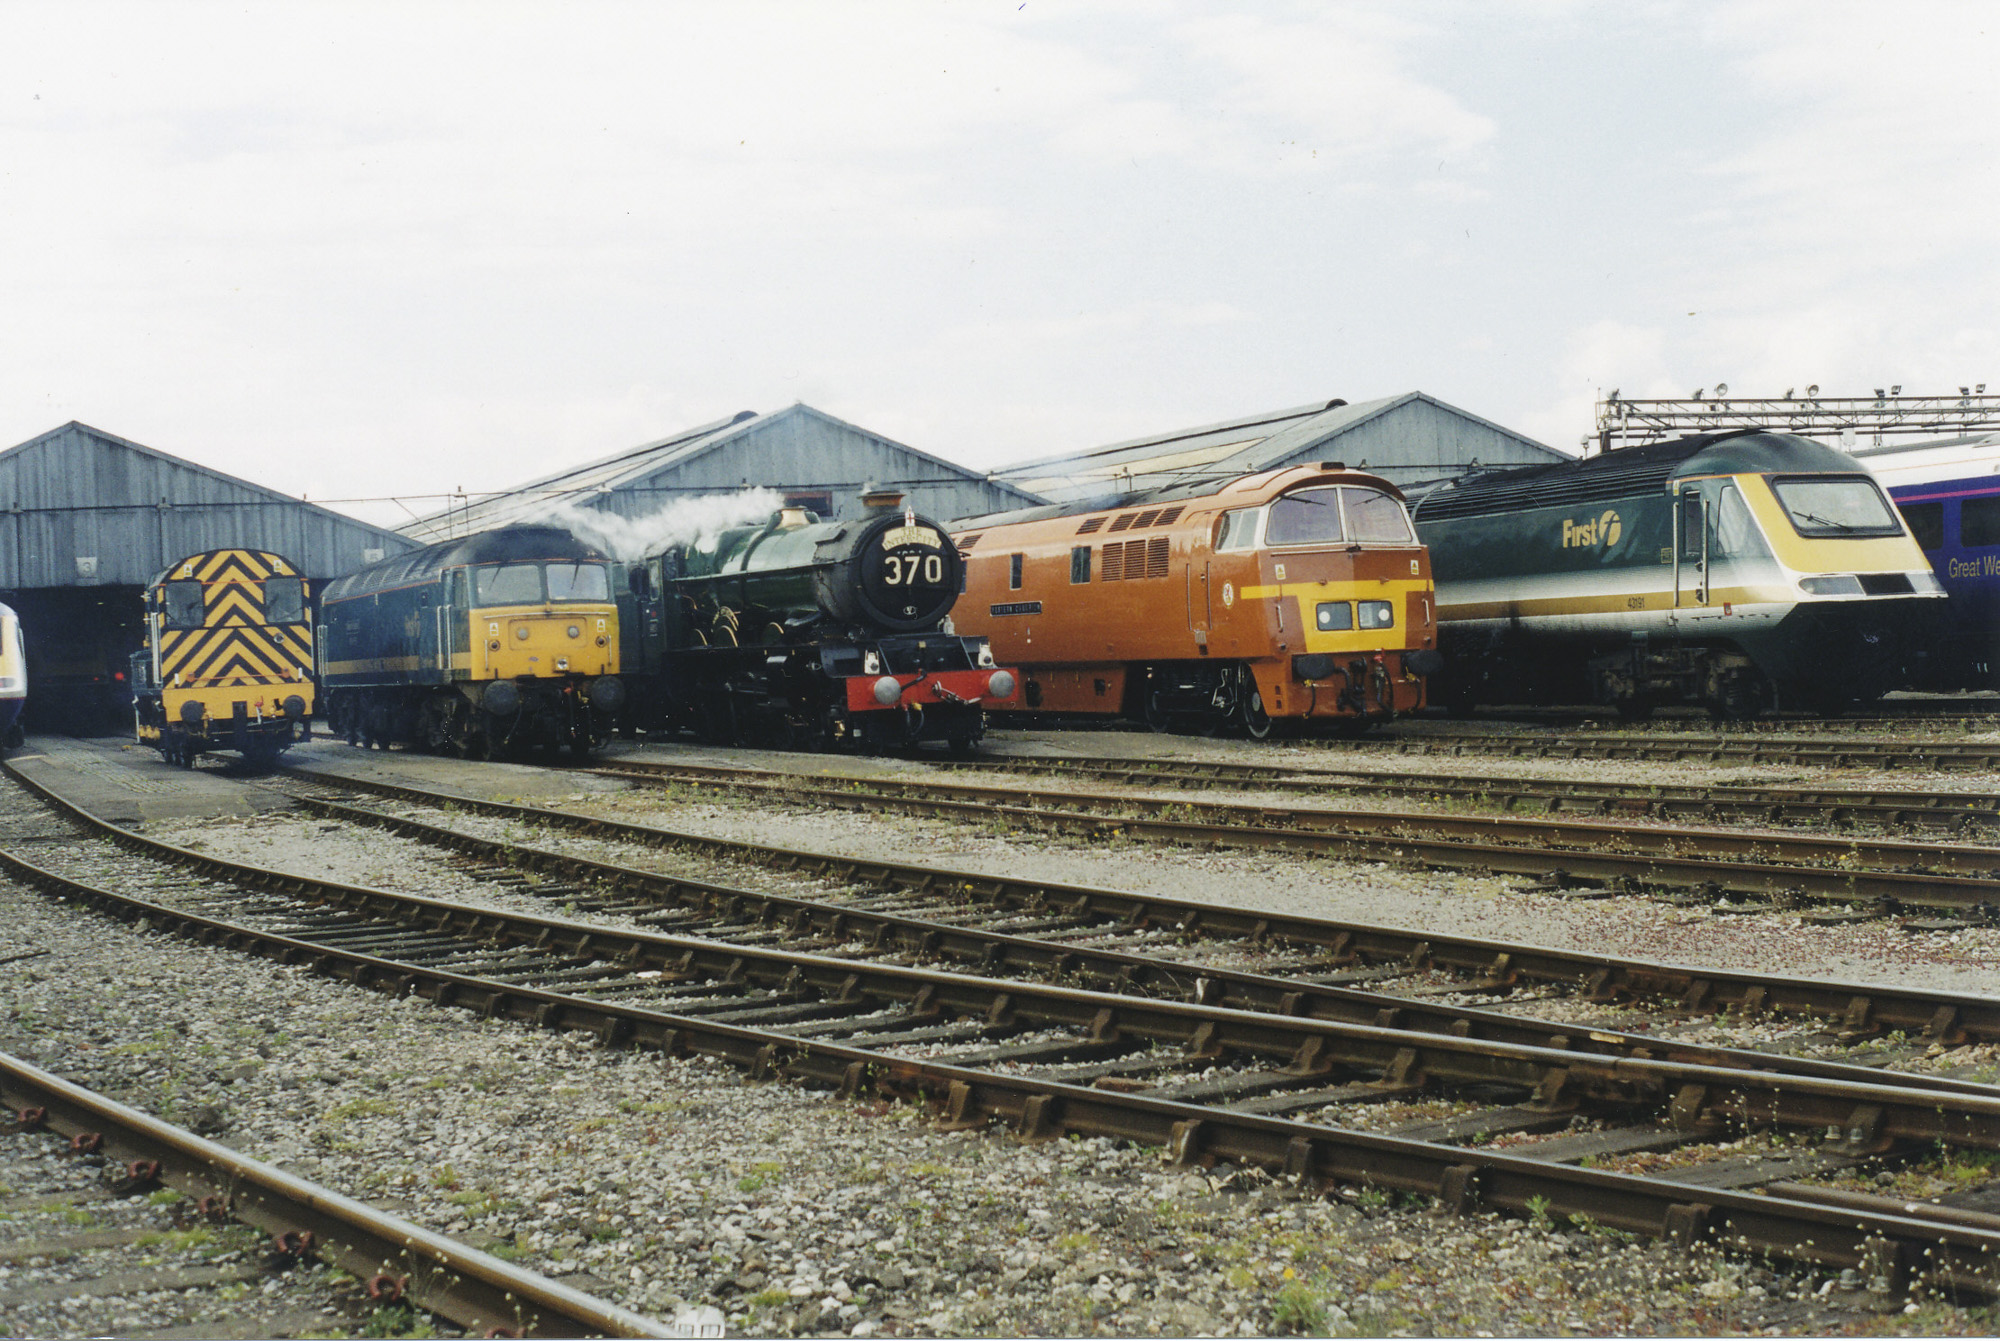 Traction line up at Old Oak Common. © Bob Robson/6024 PS Ltd